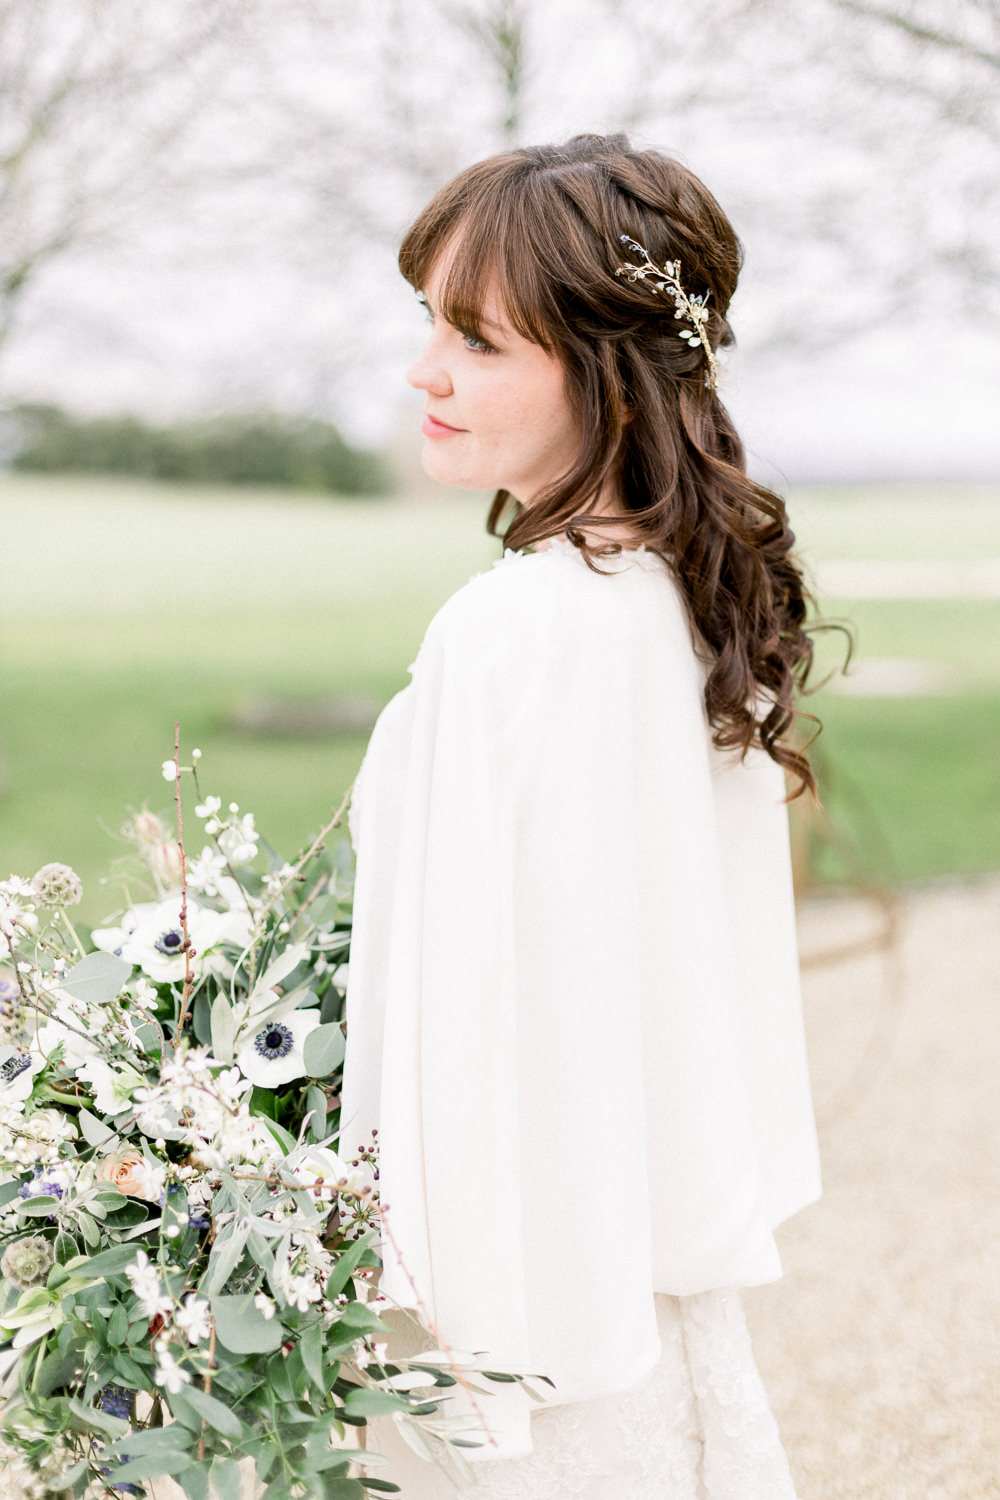 Dress Gown Bride Bridal Cape Winter Blue Barn Wedding Ideas Joanna Briggs Photography